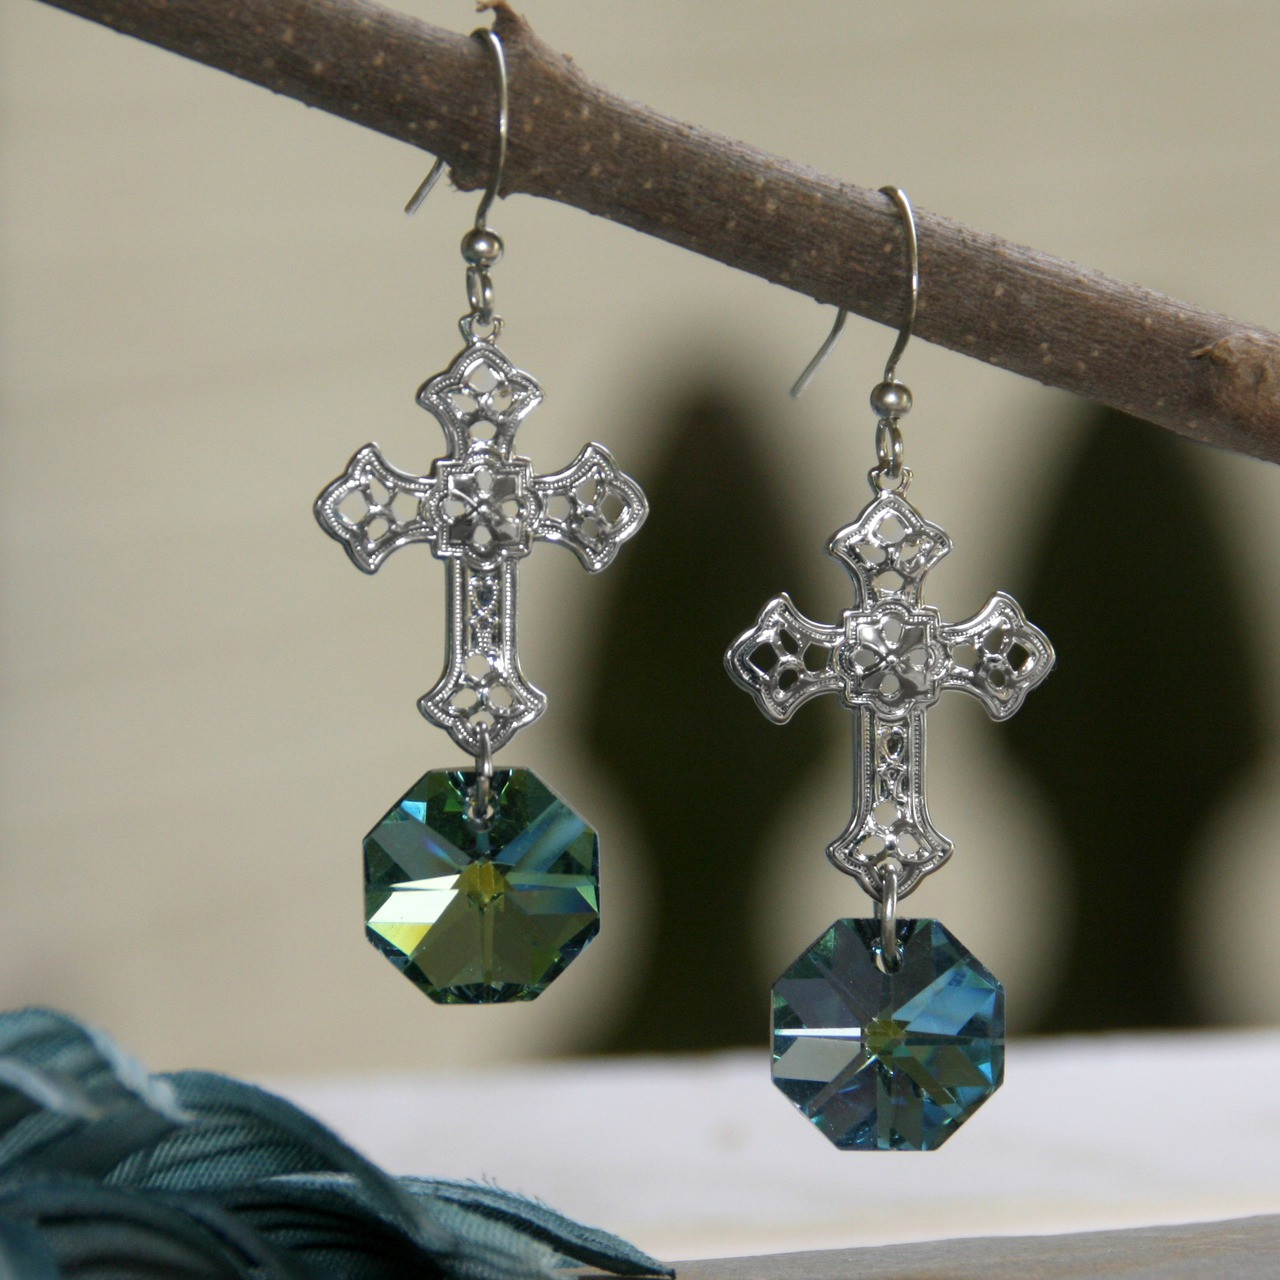 de65ff839 IN-59 WOW Fabulous Color Crystal Filagree Cross Earrings - Collectables The  Studio